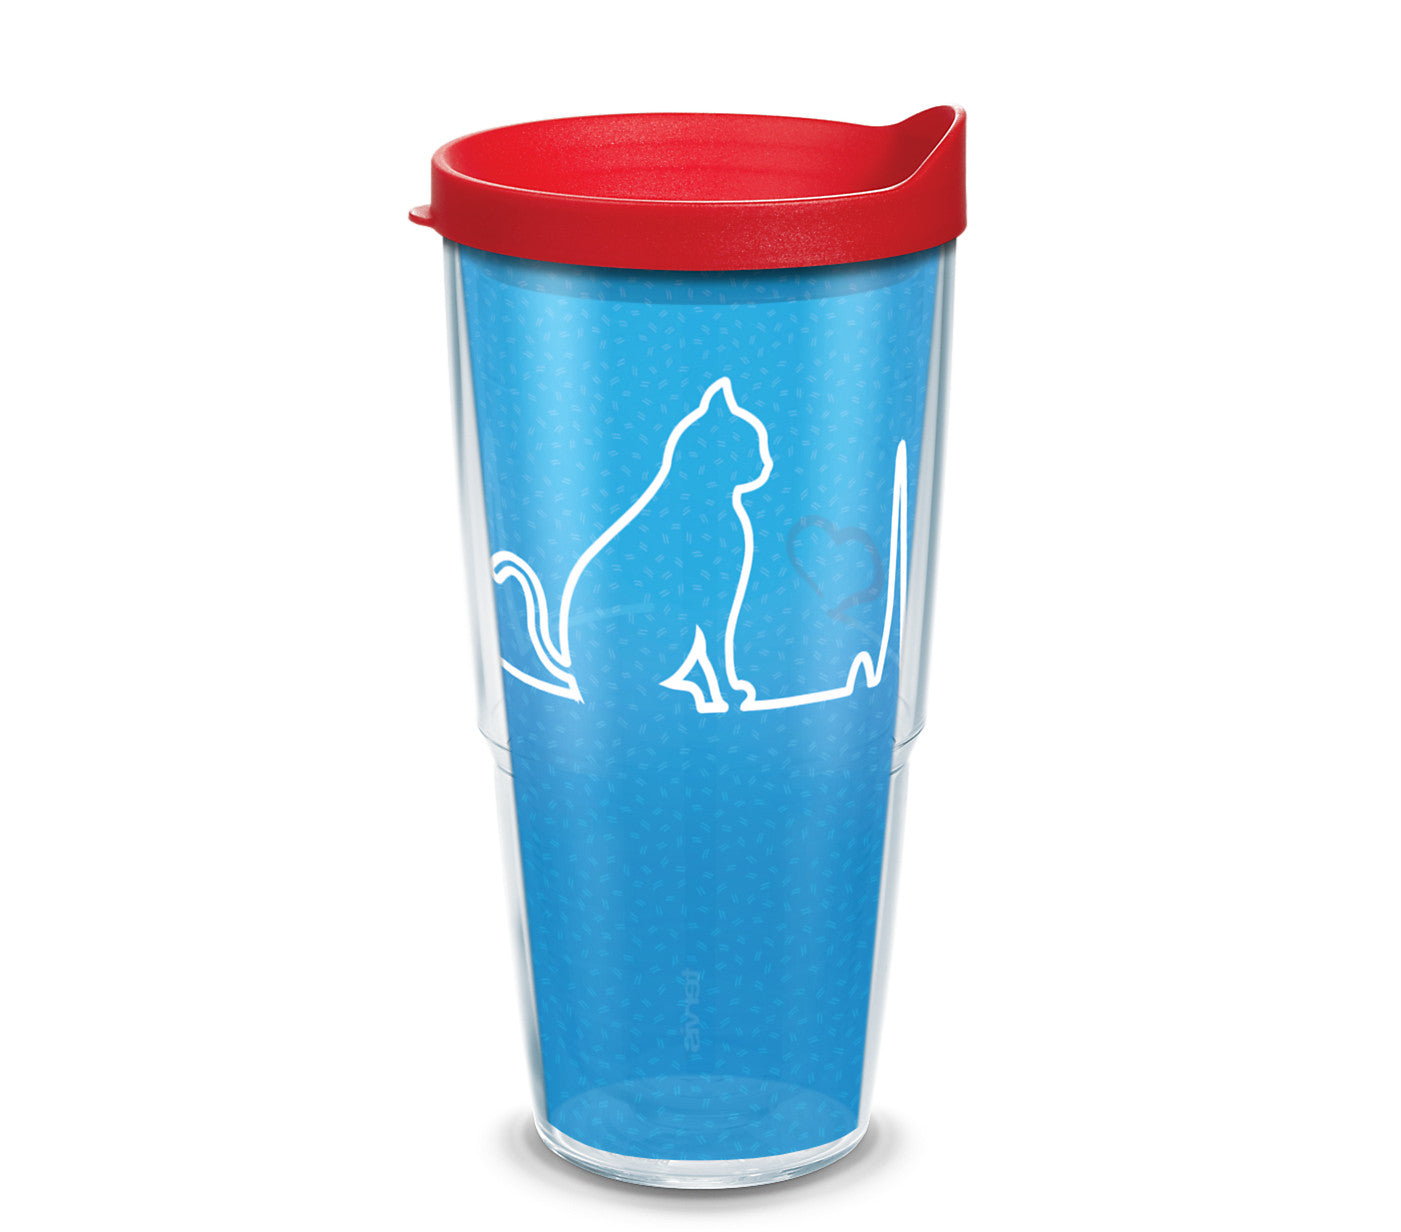 Cat Heartbeat 24 oz. Tumbler with red lid